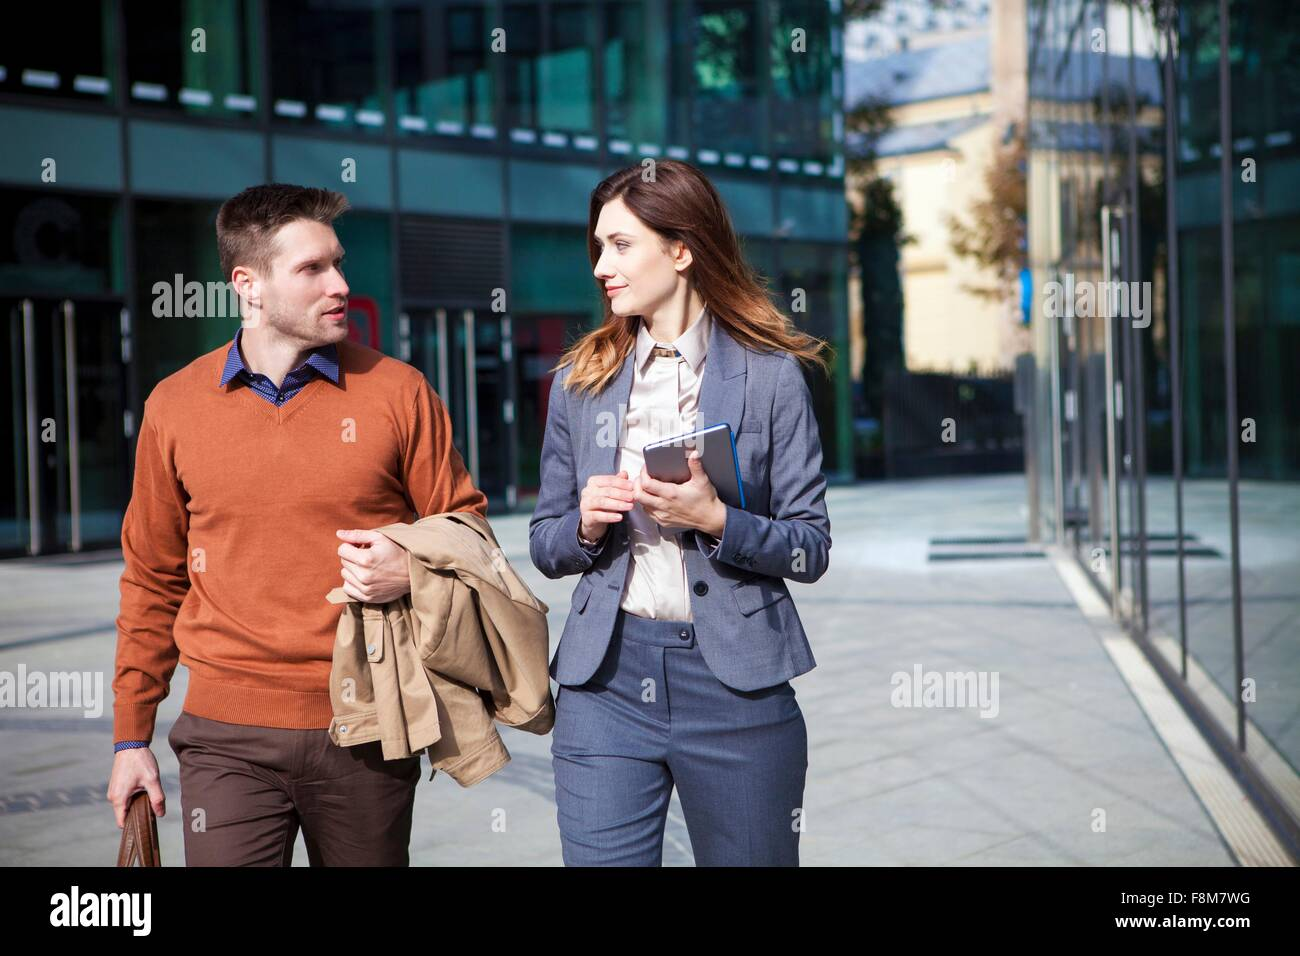 Casual businessman and woman on way to work - Stock Image